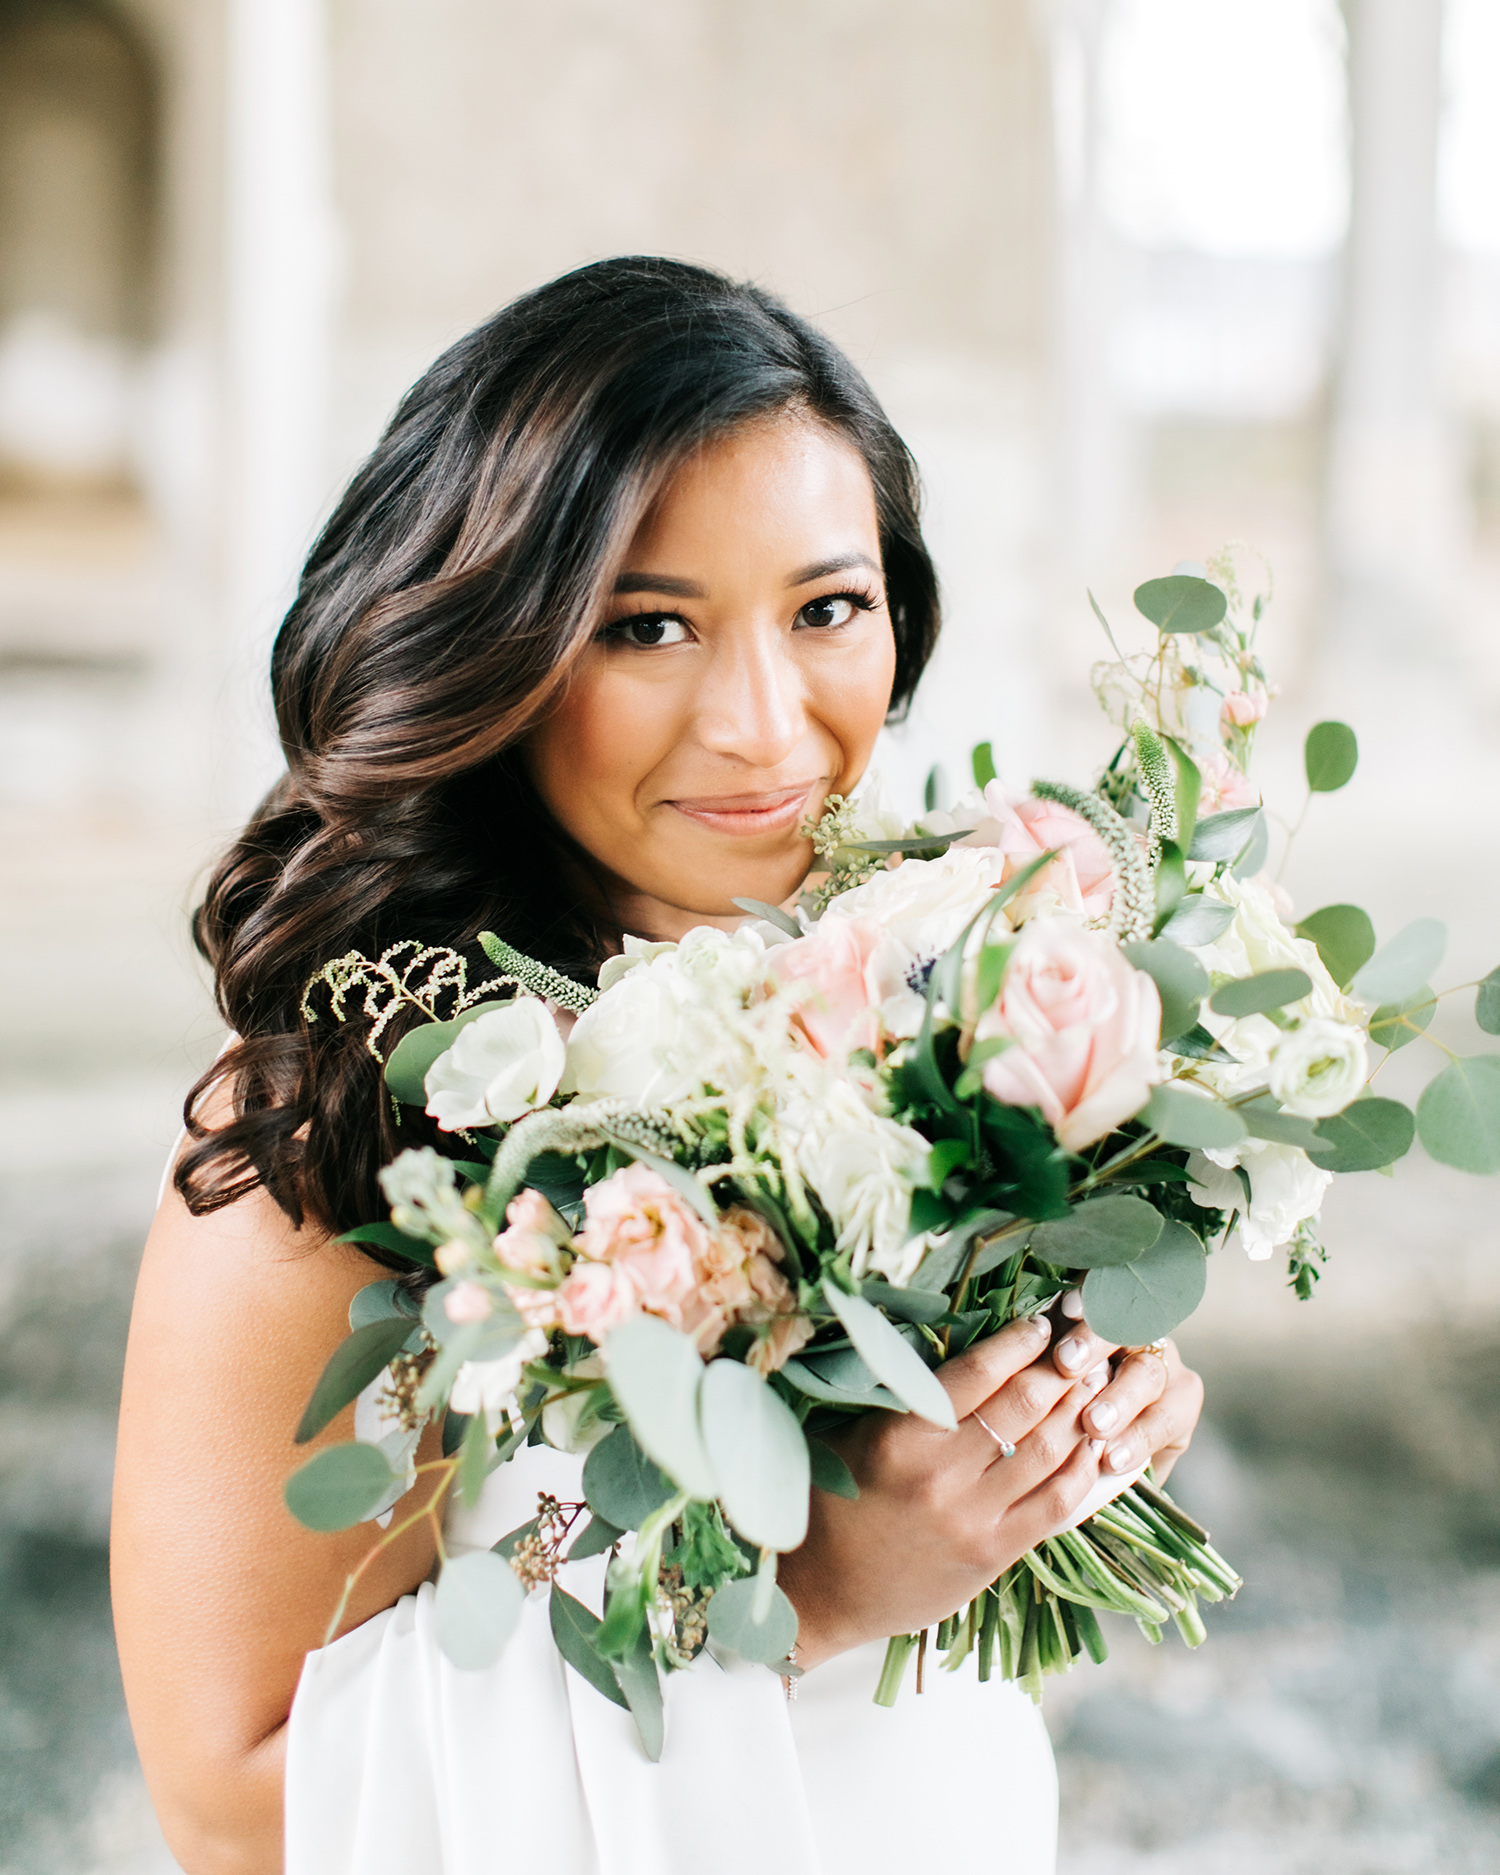 jessica ali wedding floral bouquet bride